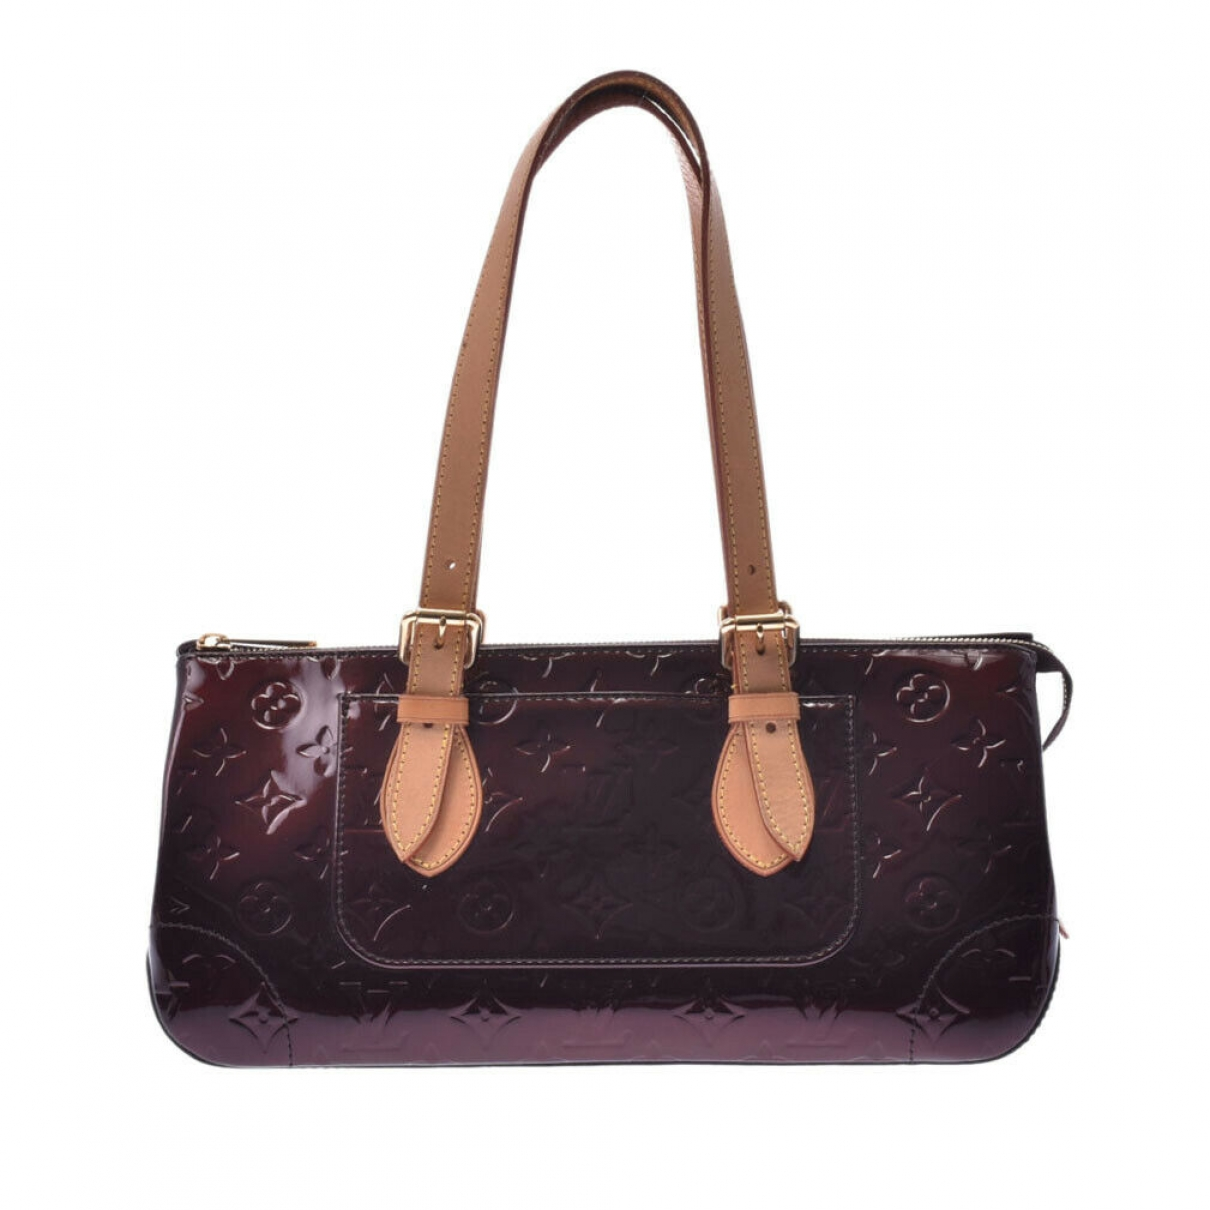 Louis Vuitton Rosewood Burgundy Leather handbag for Women \N